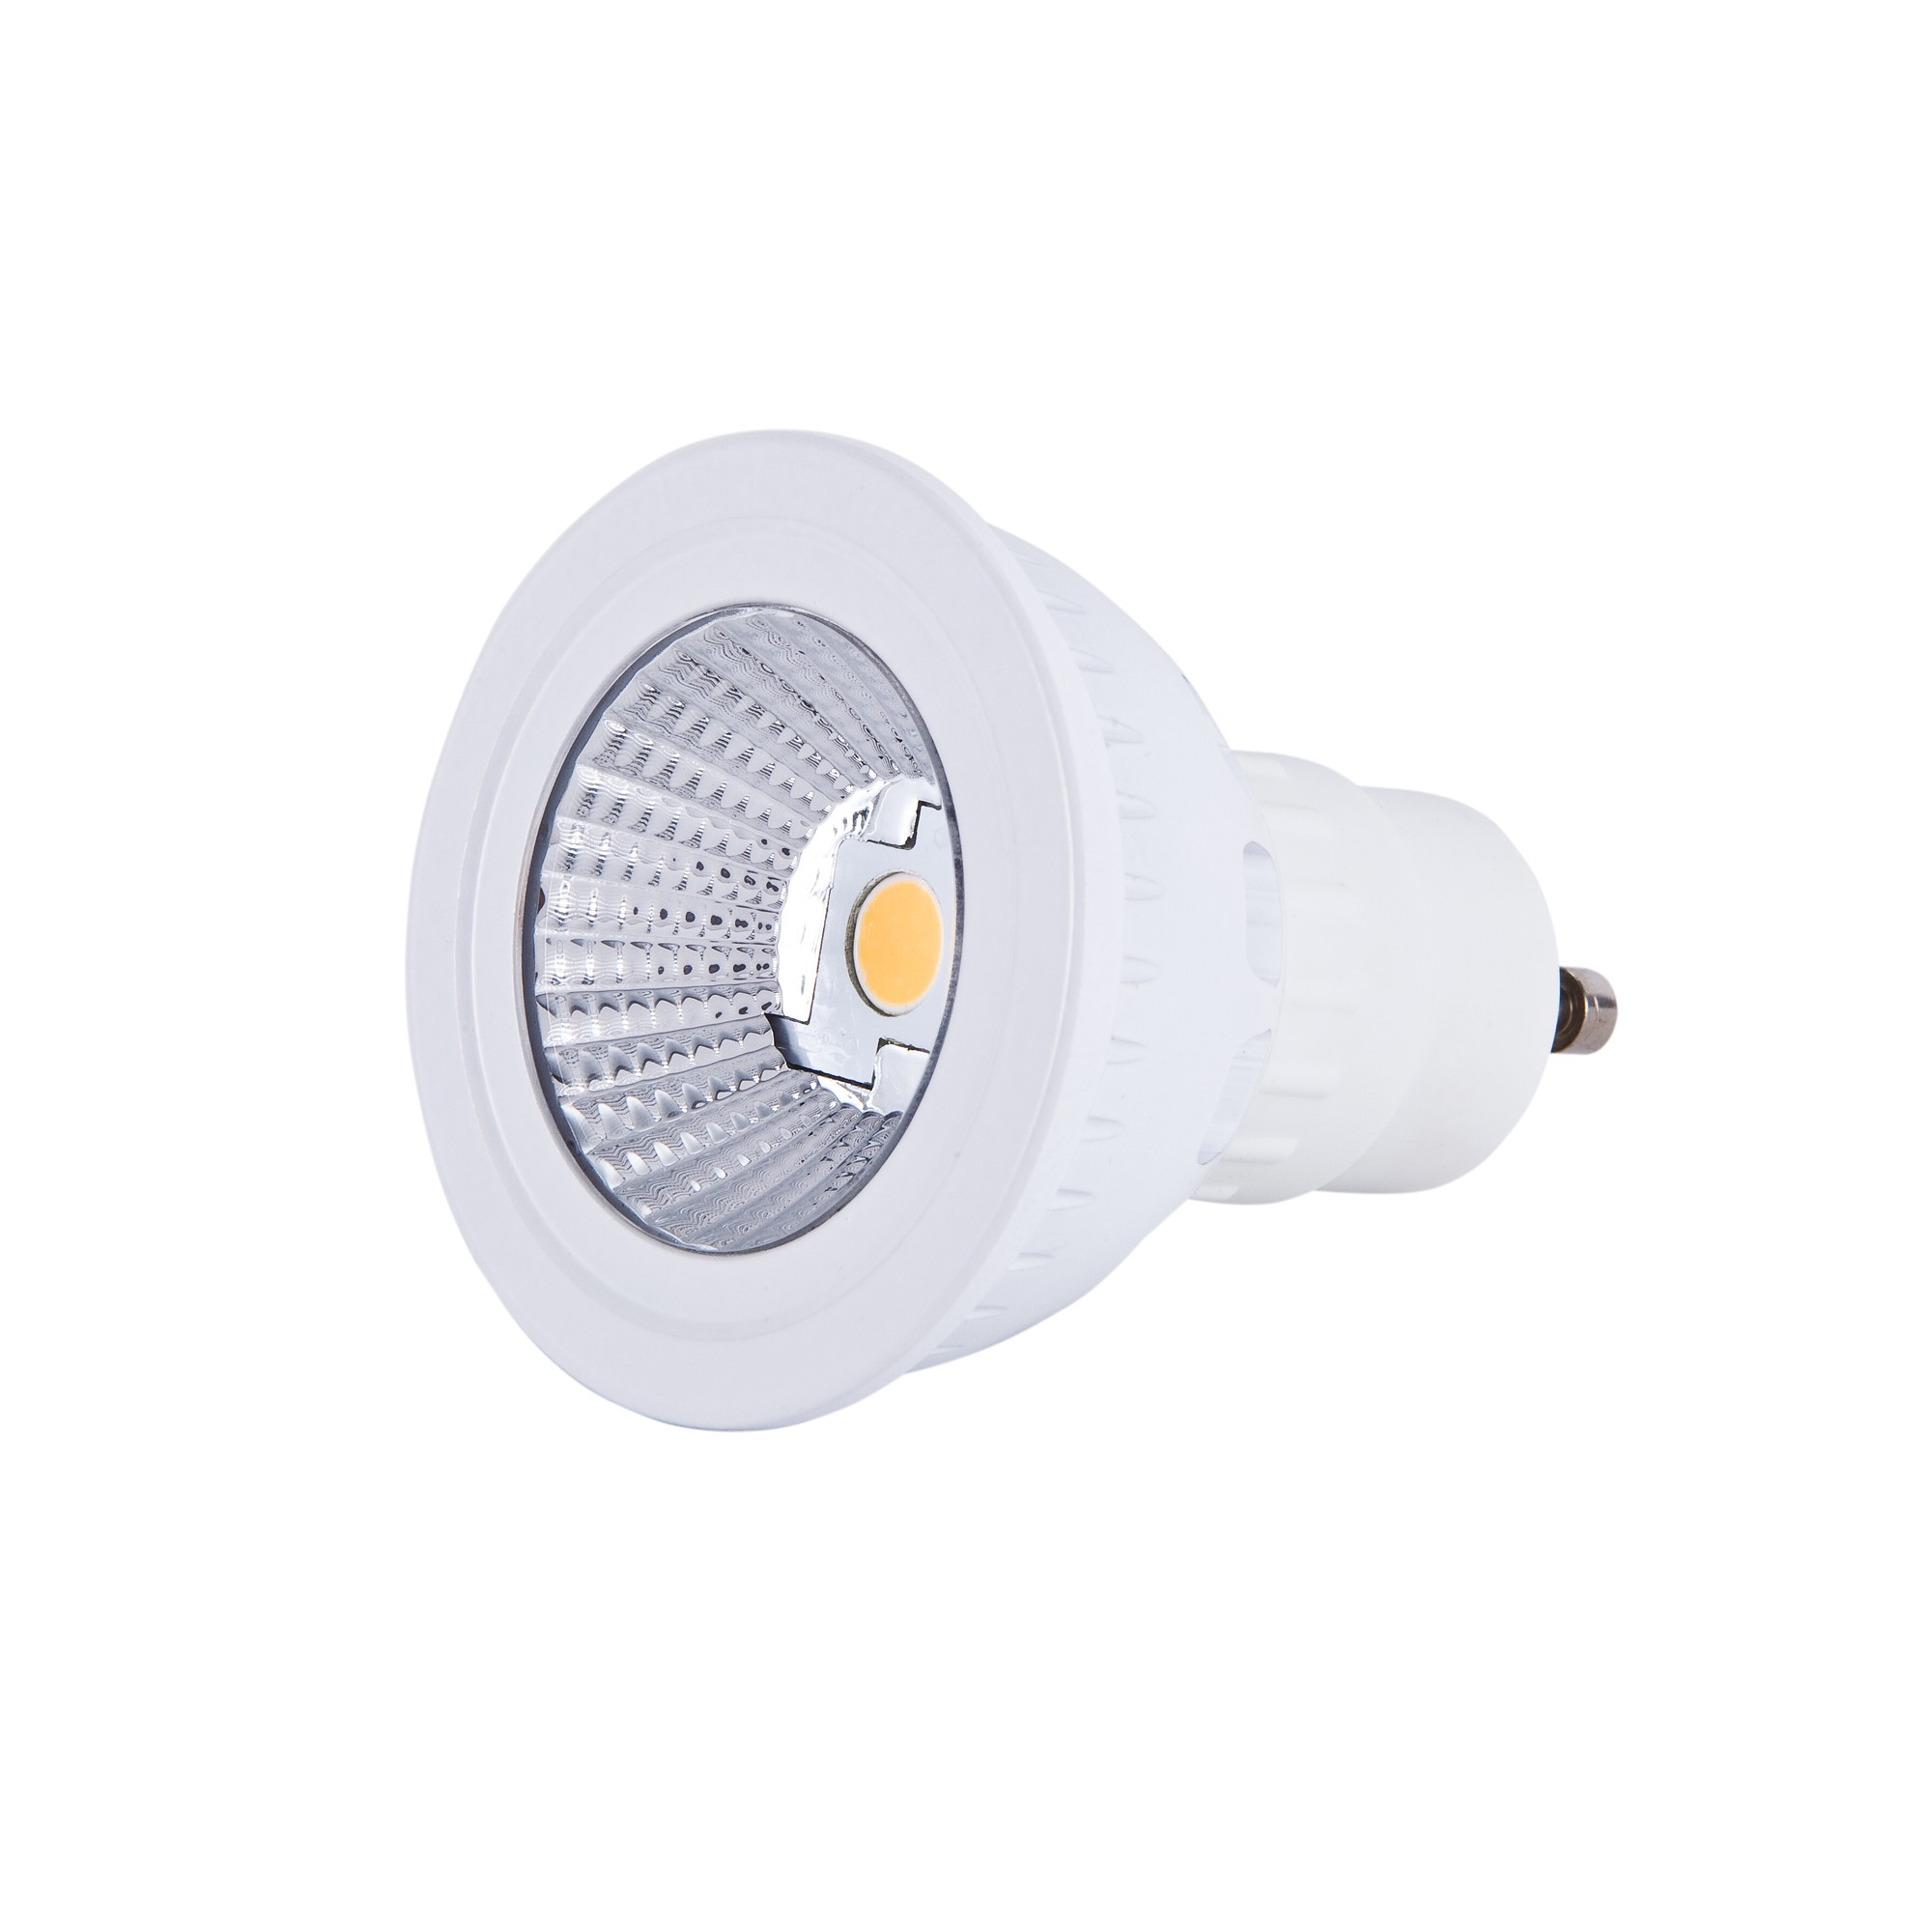 Ampoule Led 5 Watt Ampoule Gu10 Cob Led Sharp 5 Watts